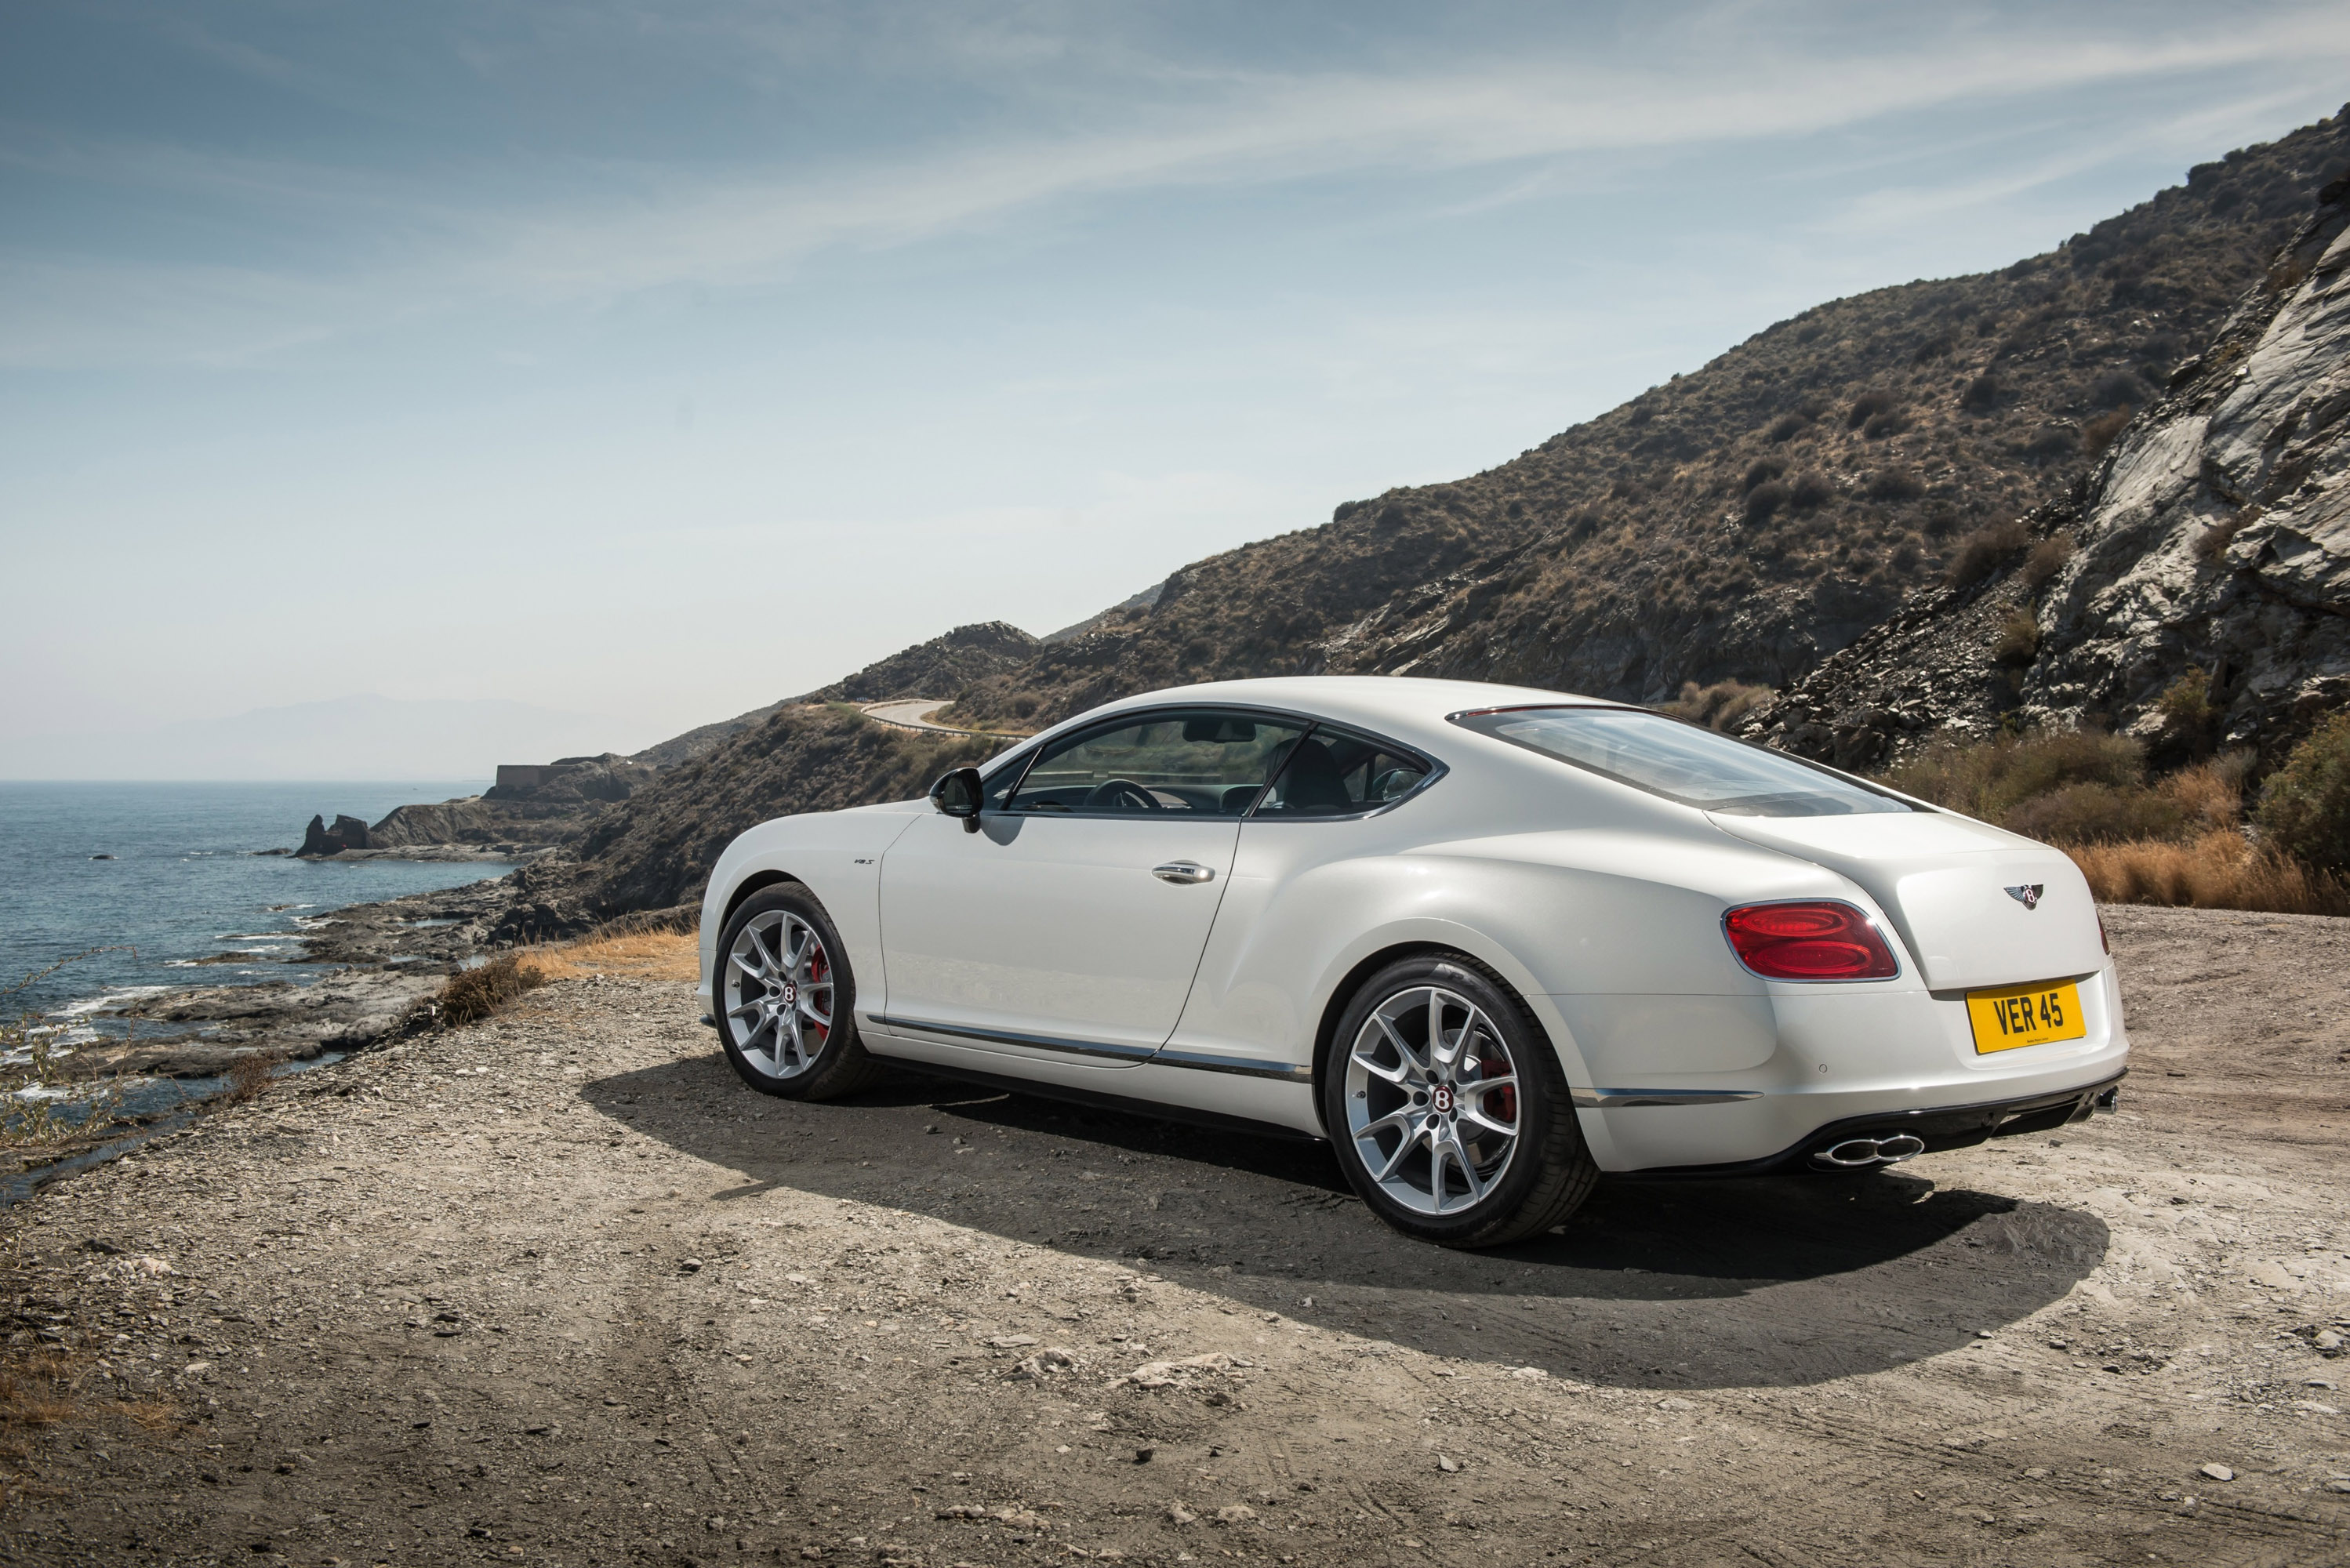 2013 bentley continental gt v8 s 528hp and 680nm 2013 bentley continental gt v8 s vanachro Choice Image